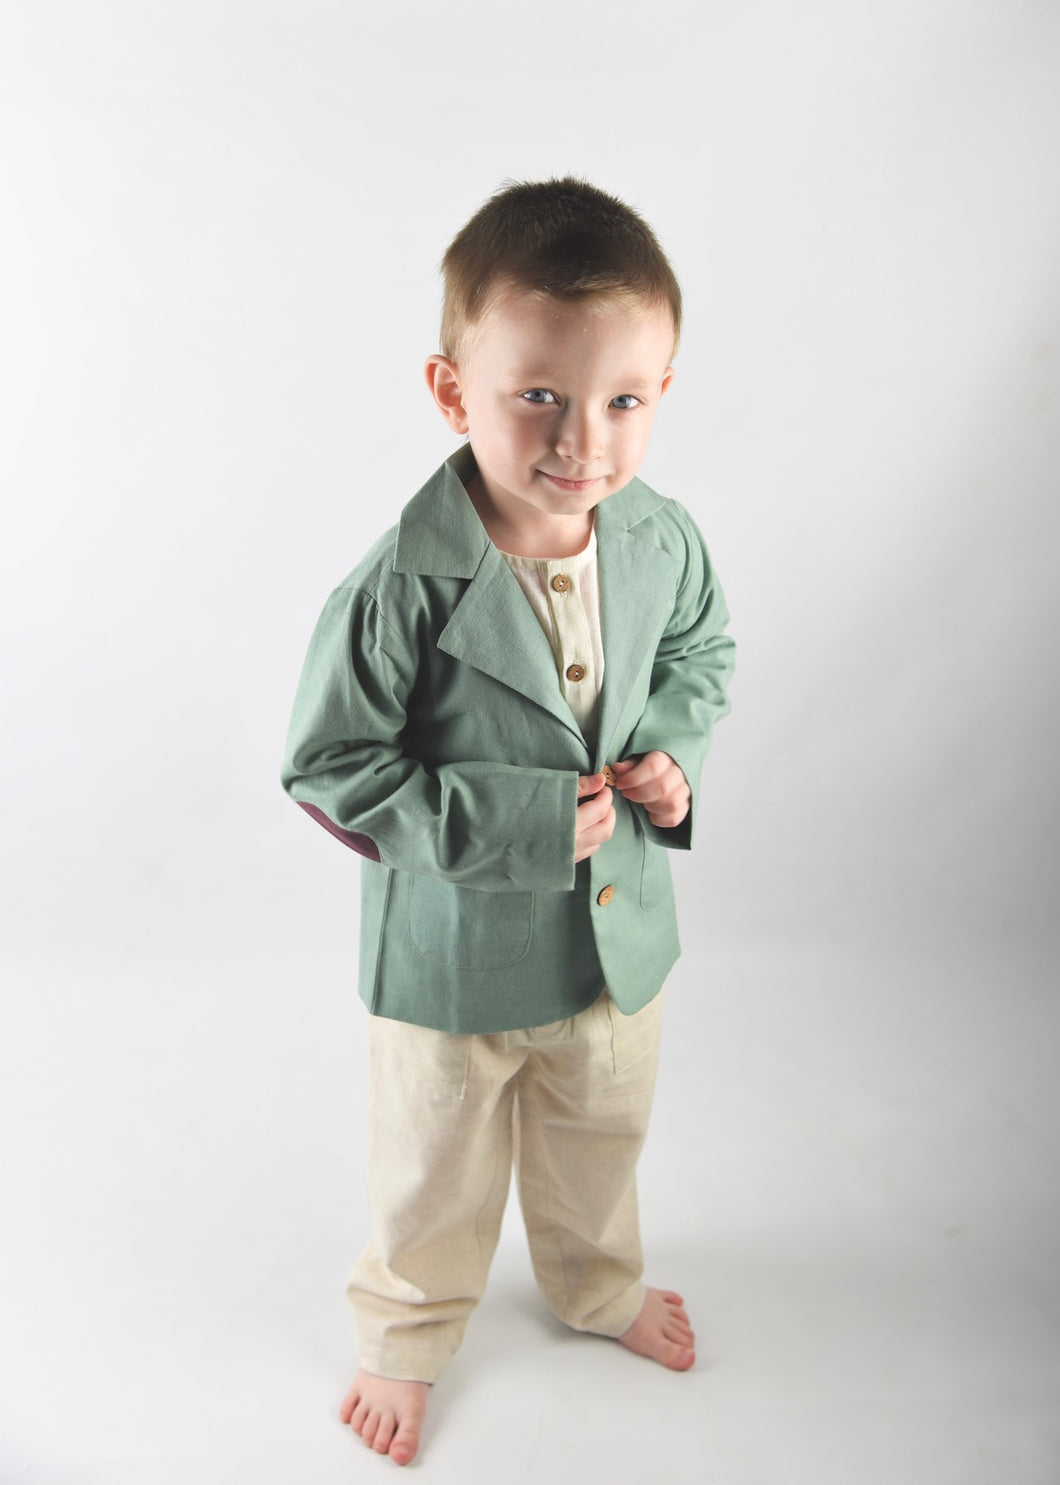 Boys Blazer & Pants Set - Pistachio/Ivory - Kids Wholesale Boutique Clothing, Boys - Girls Dresses, Yo Baby Wholesale - Yo Baby